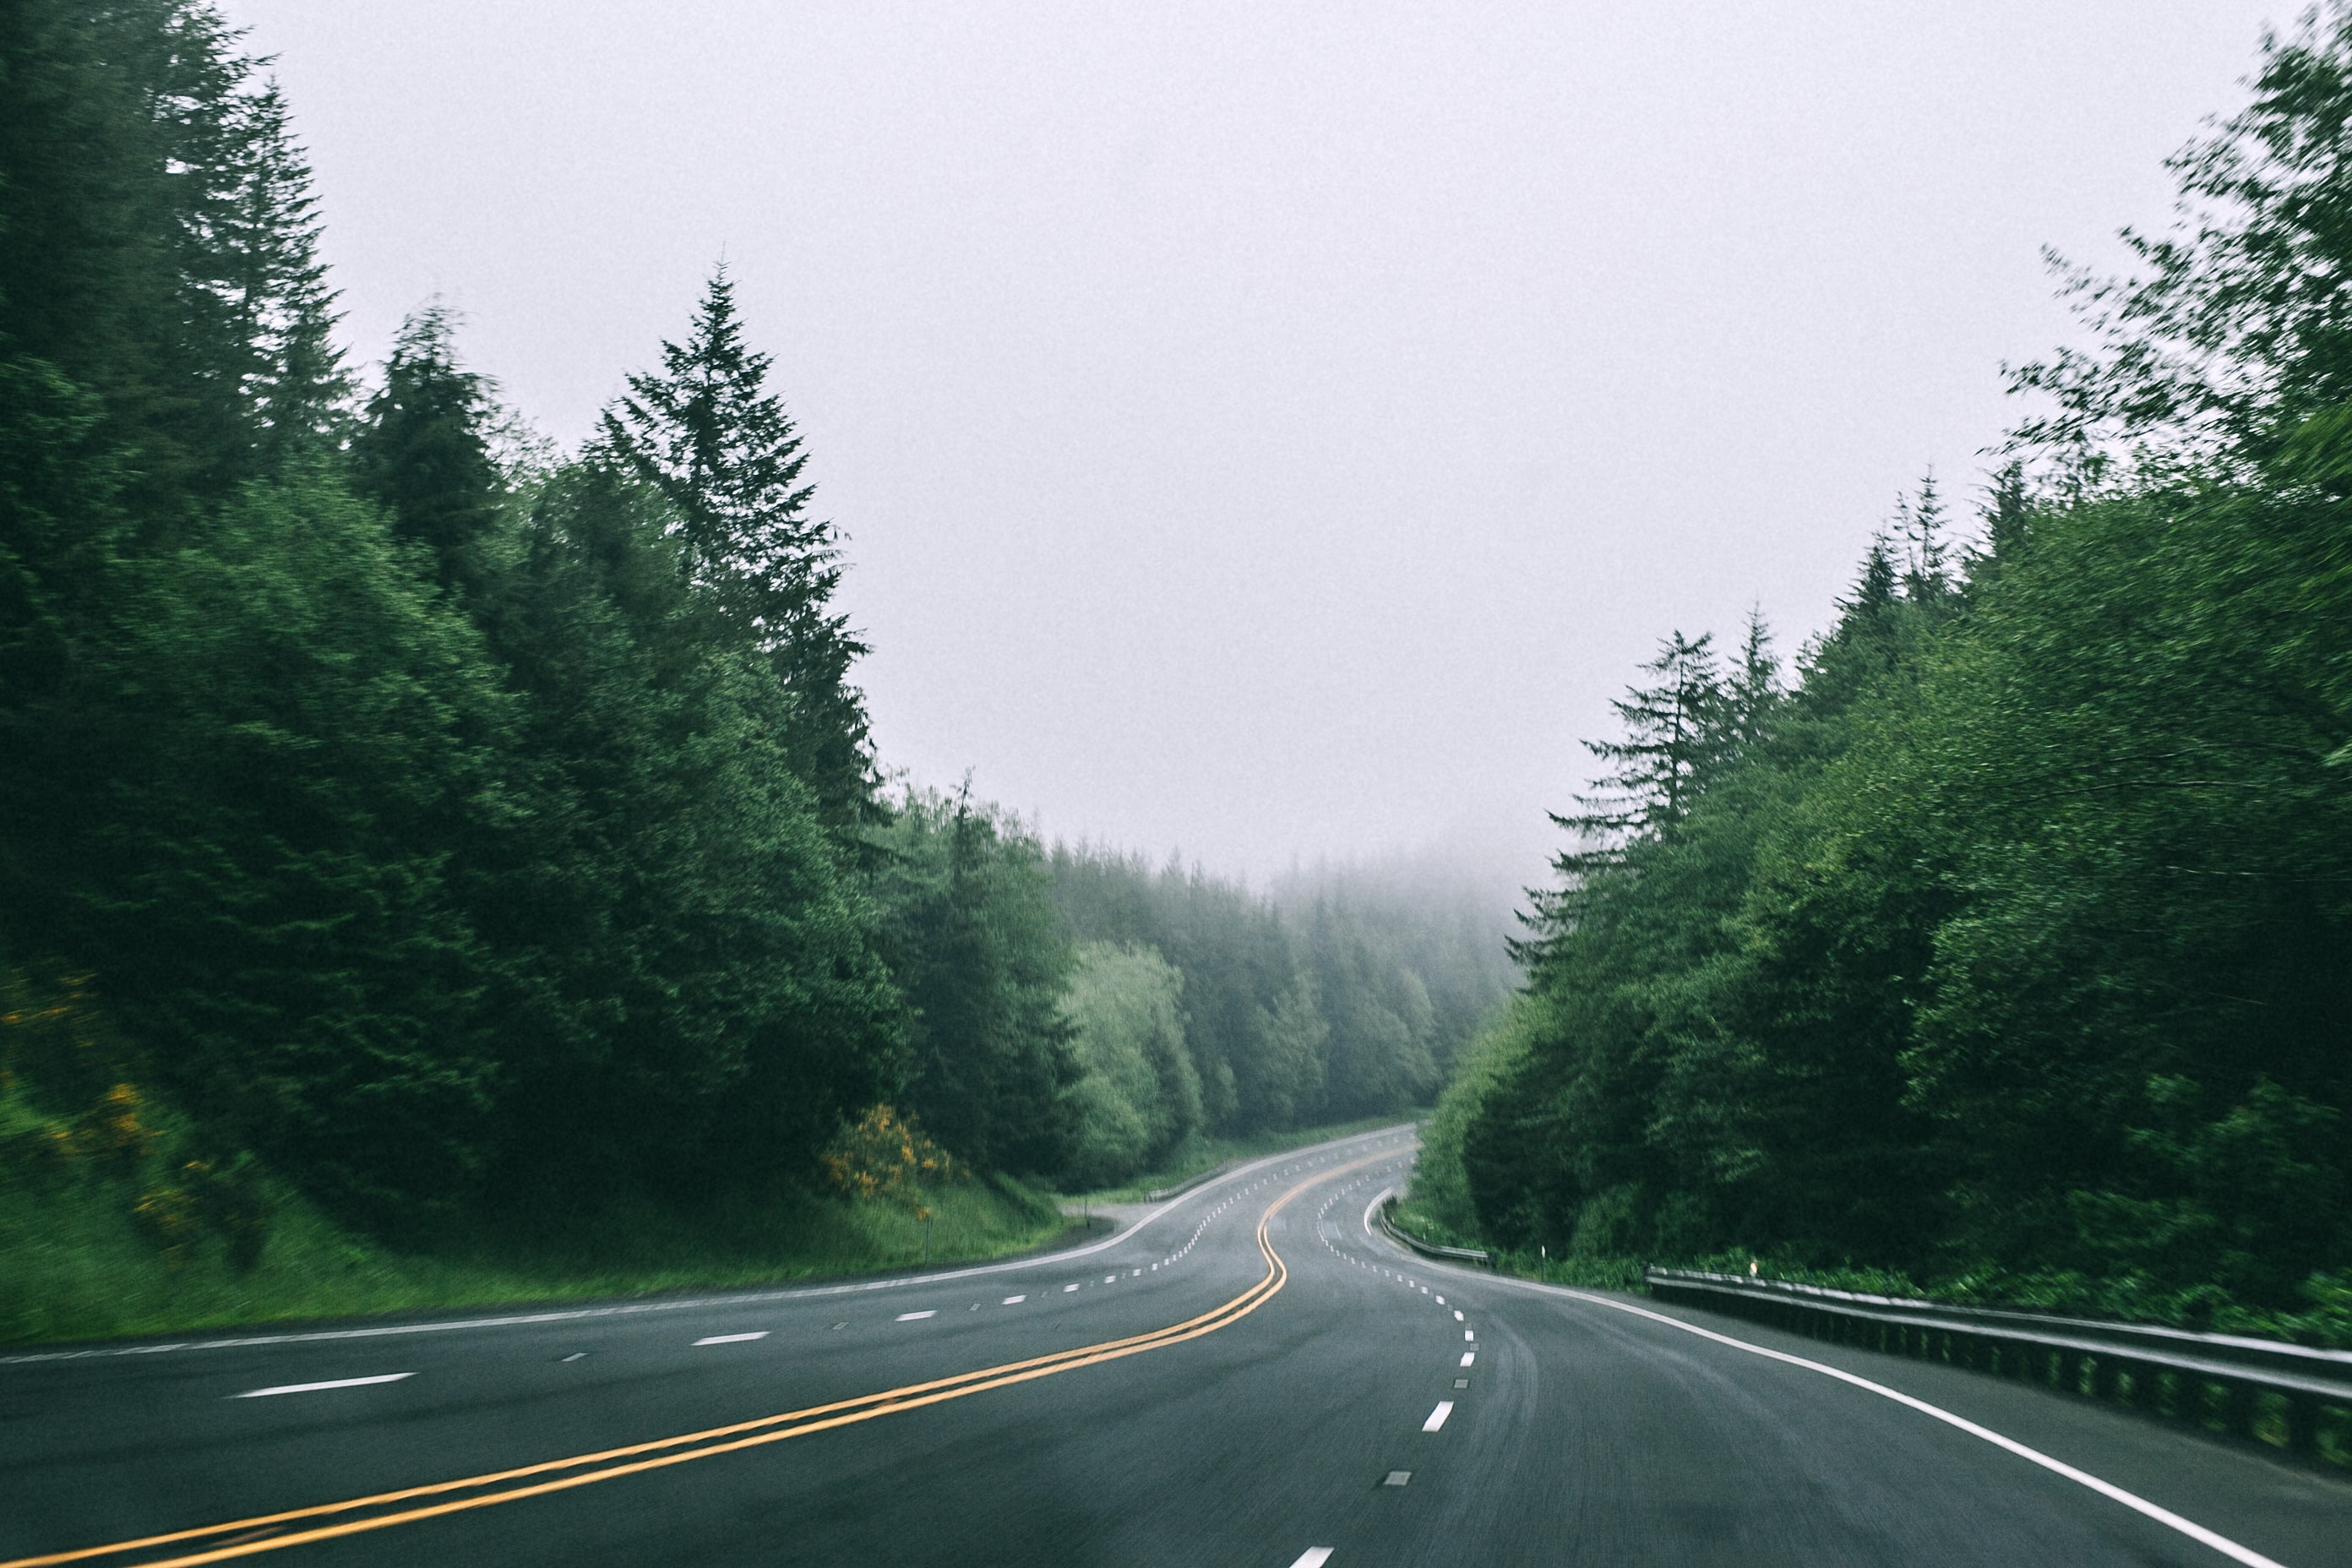 black asphalt road in between trees with foggy weather